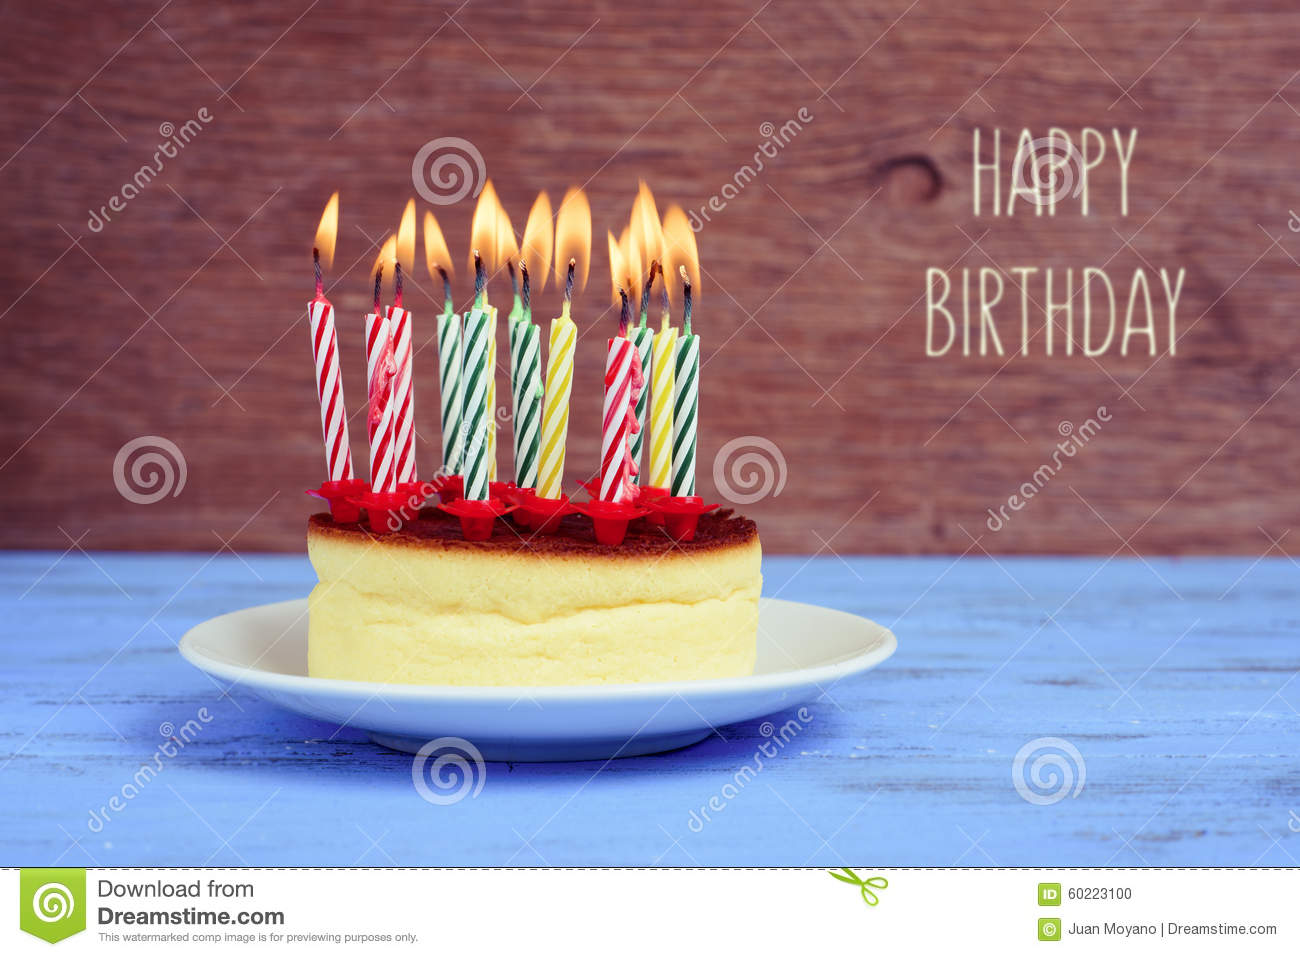 Text Happy Birthday And Cheesecake With Lighted Candles Stock Photo